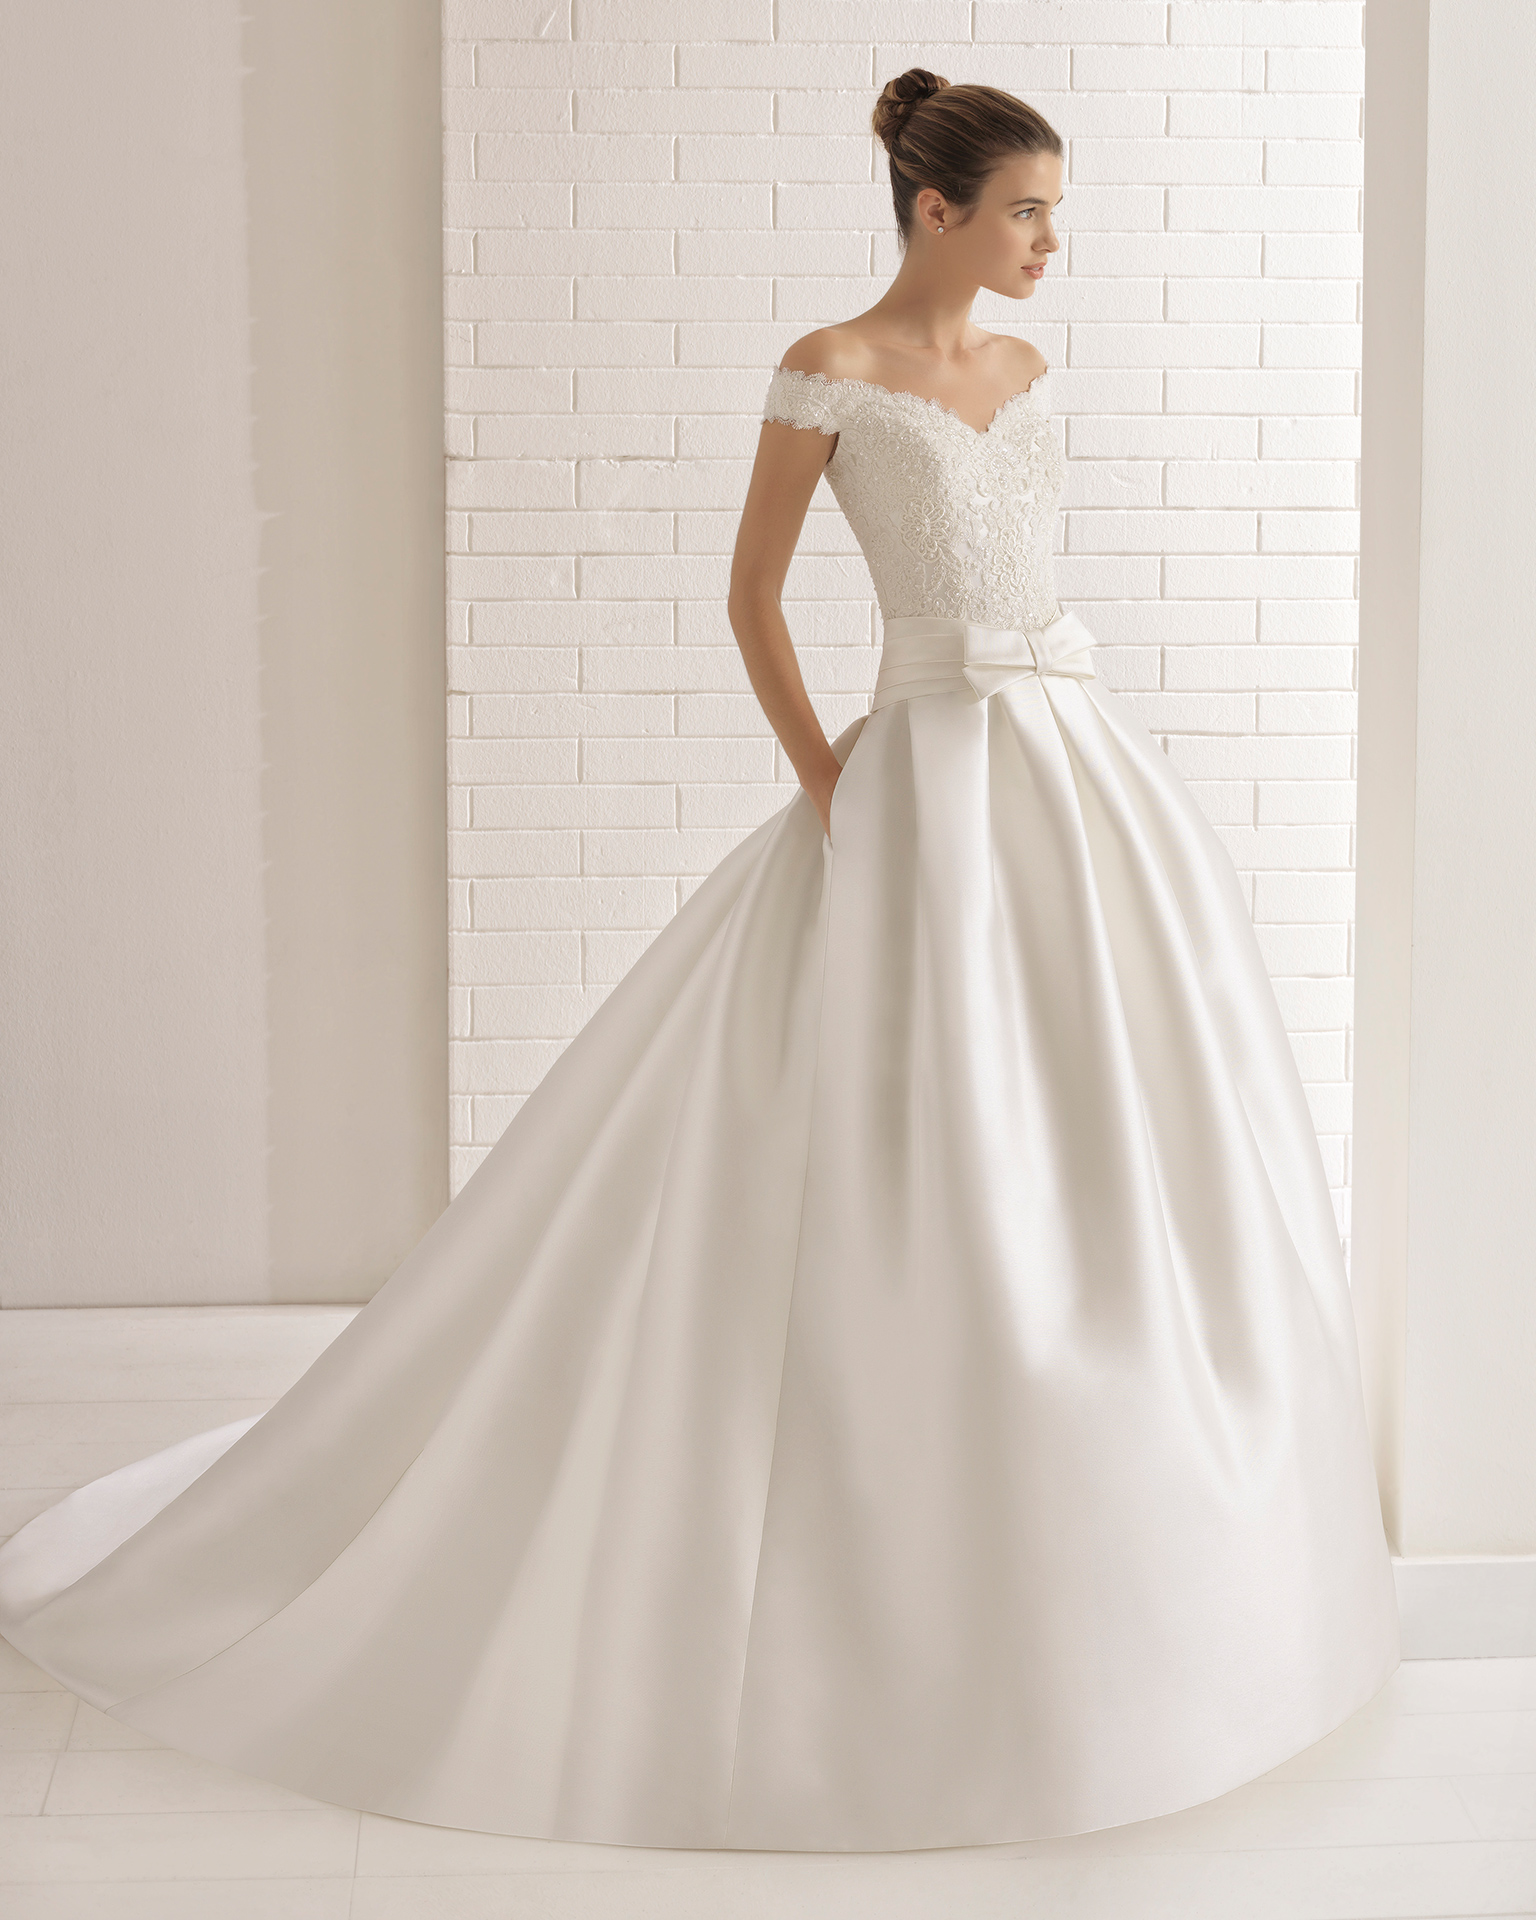 A-line beaded lace and mikado wedding dress with off-the-shoulder neckline, pockets and bow at waist.